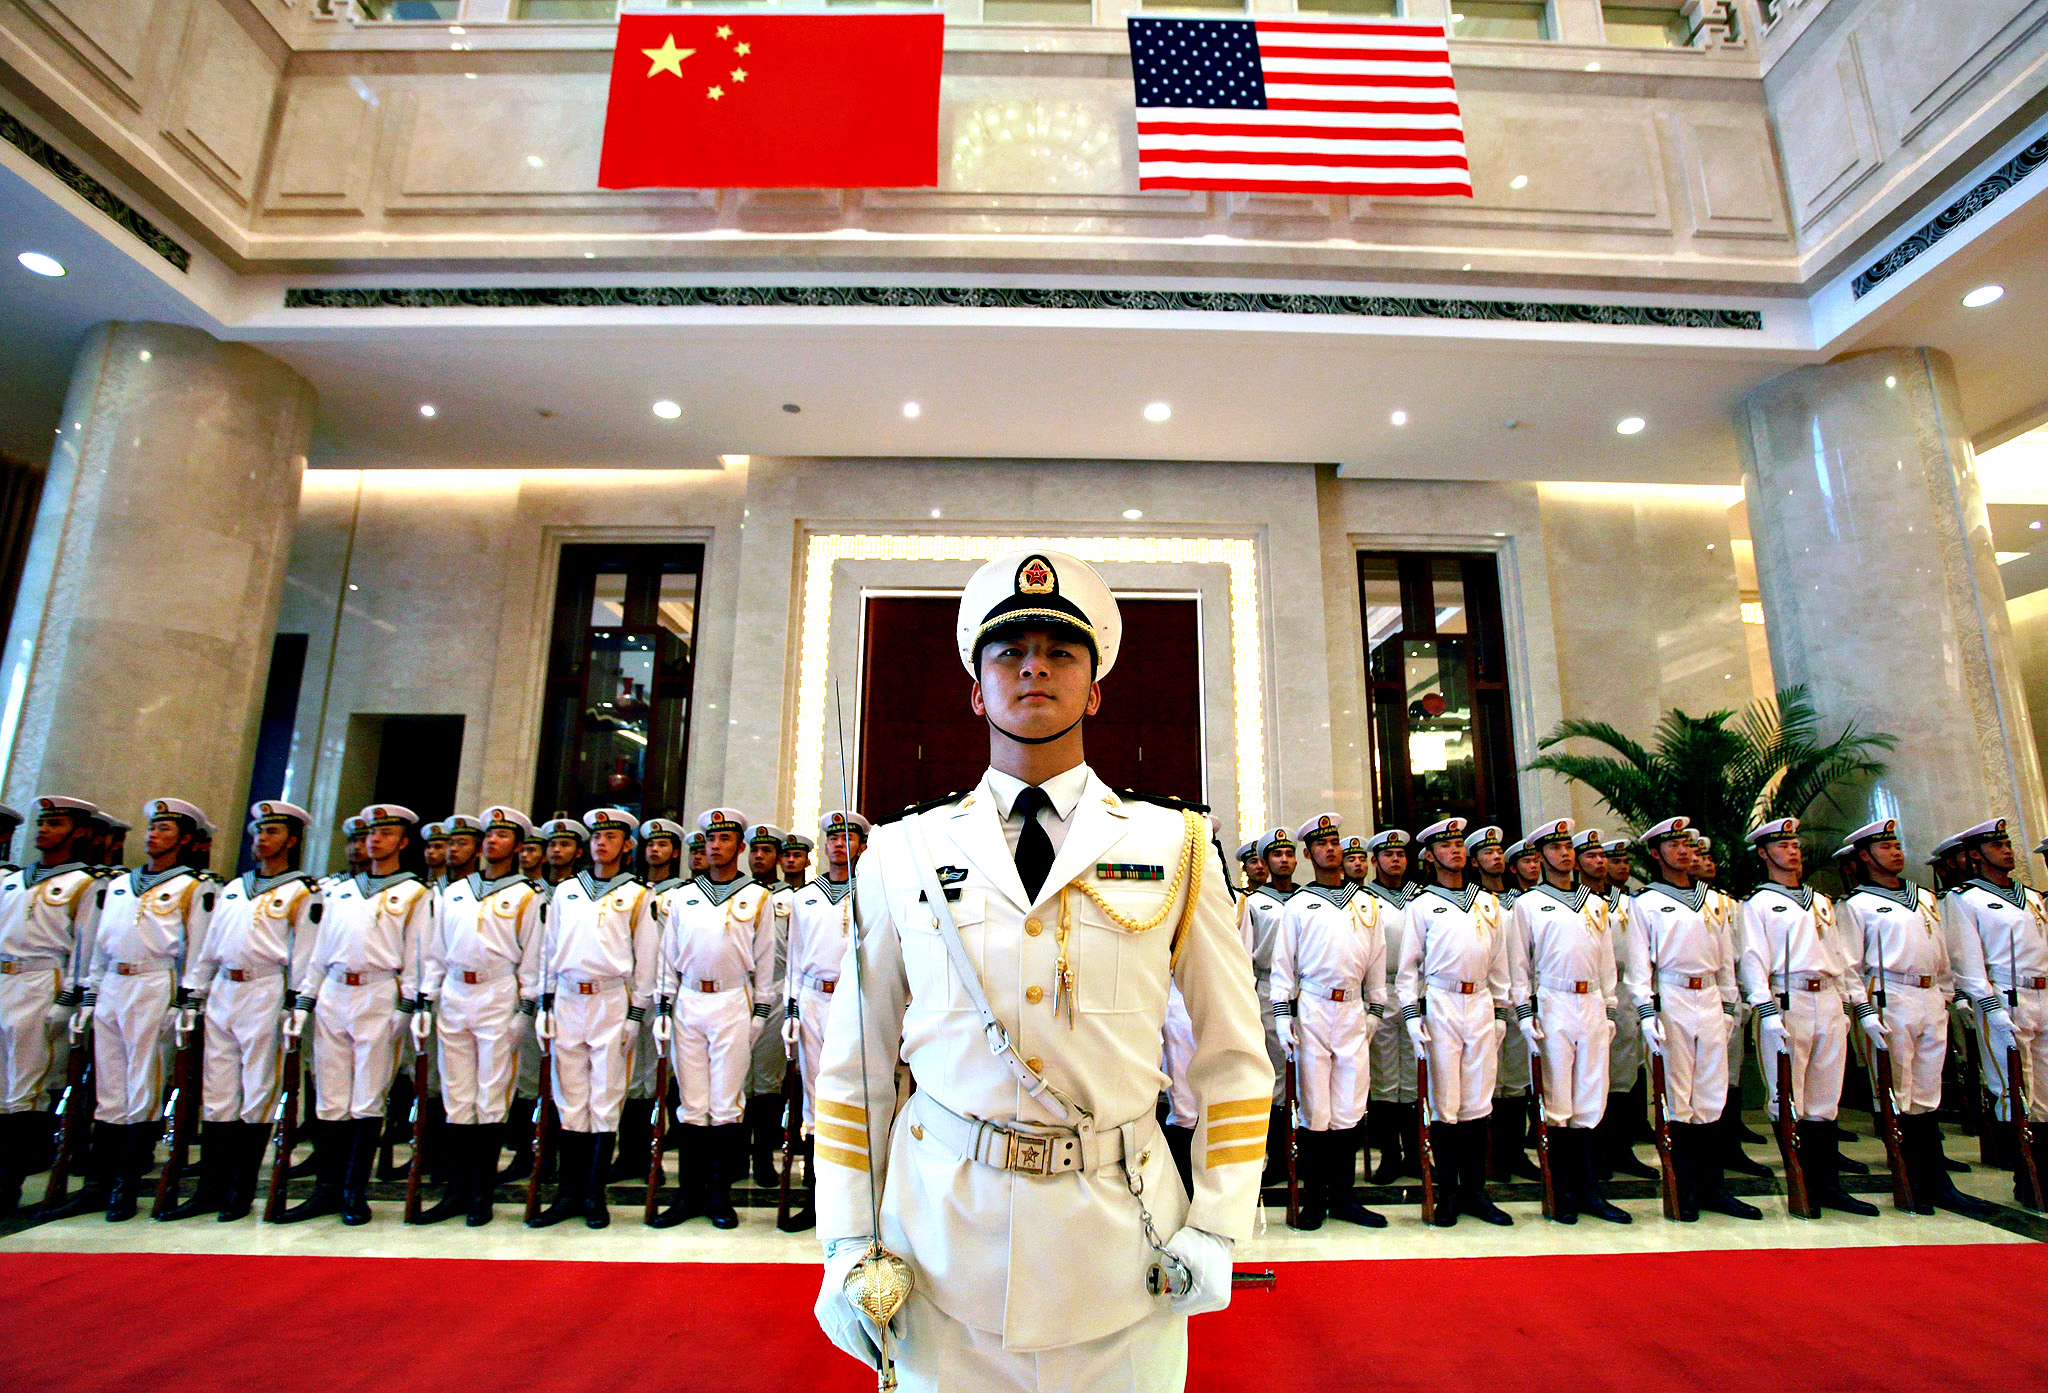 A military honor guard prepares for US Chief of Naval Operations Admiral Jonathan Greenert's visit with Commander in Chief of The People's Liberation Army (PLA) Navy Admiral Wu Shengli at a welcoming ceremony at the PLA Navy headquarters outside of Beijing, China, 15 July 2014.  For the first time since 1971 China's navy participated alongside the US navy in Rim of the Pacific naval exercises last week.